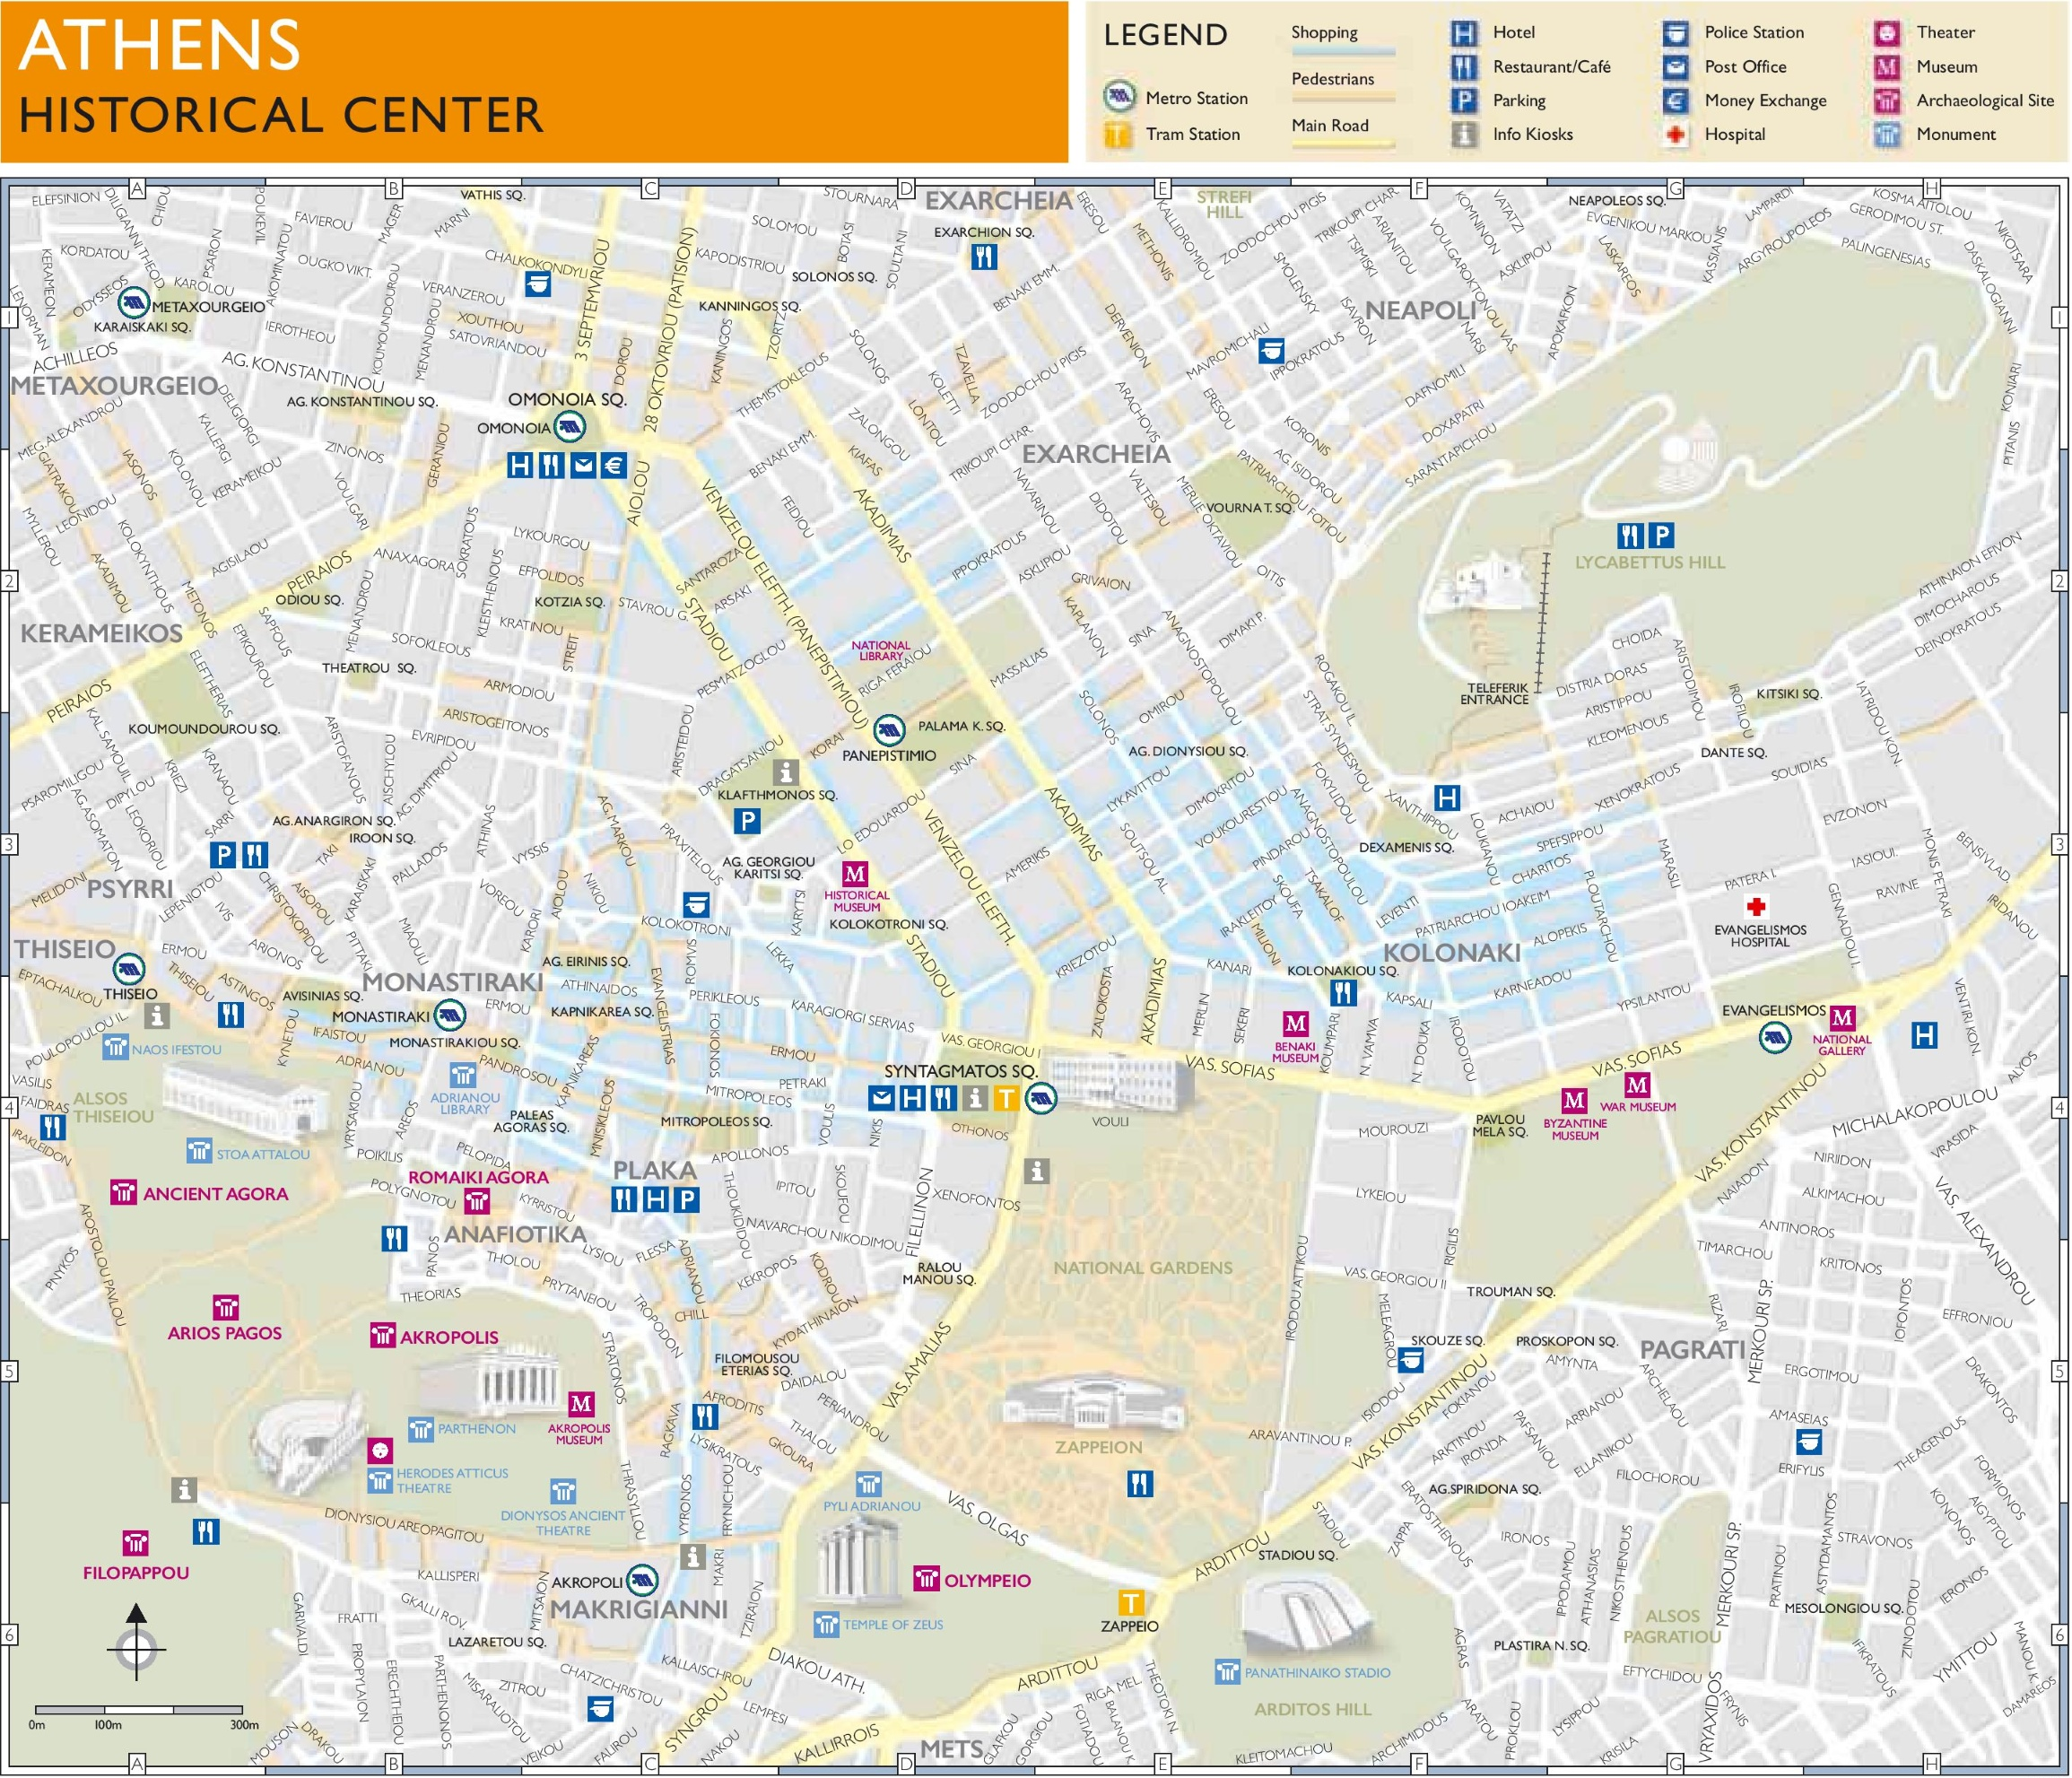 Athens historical center map